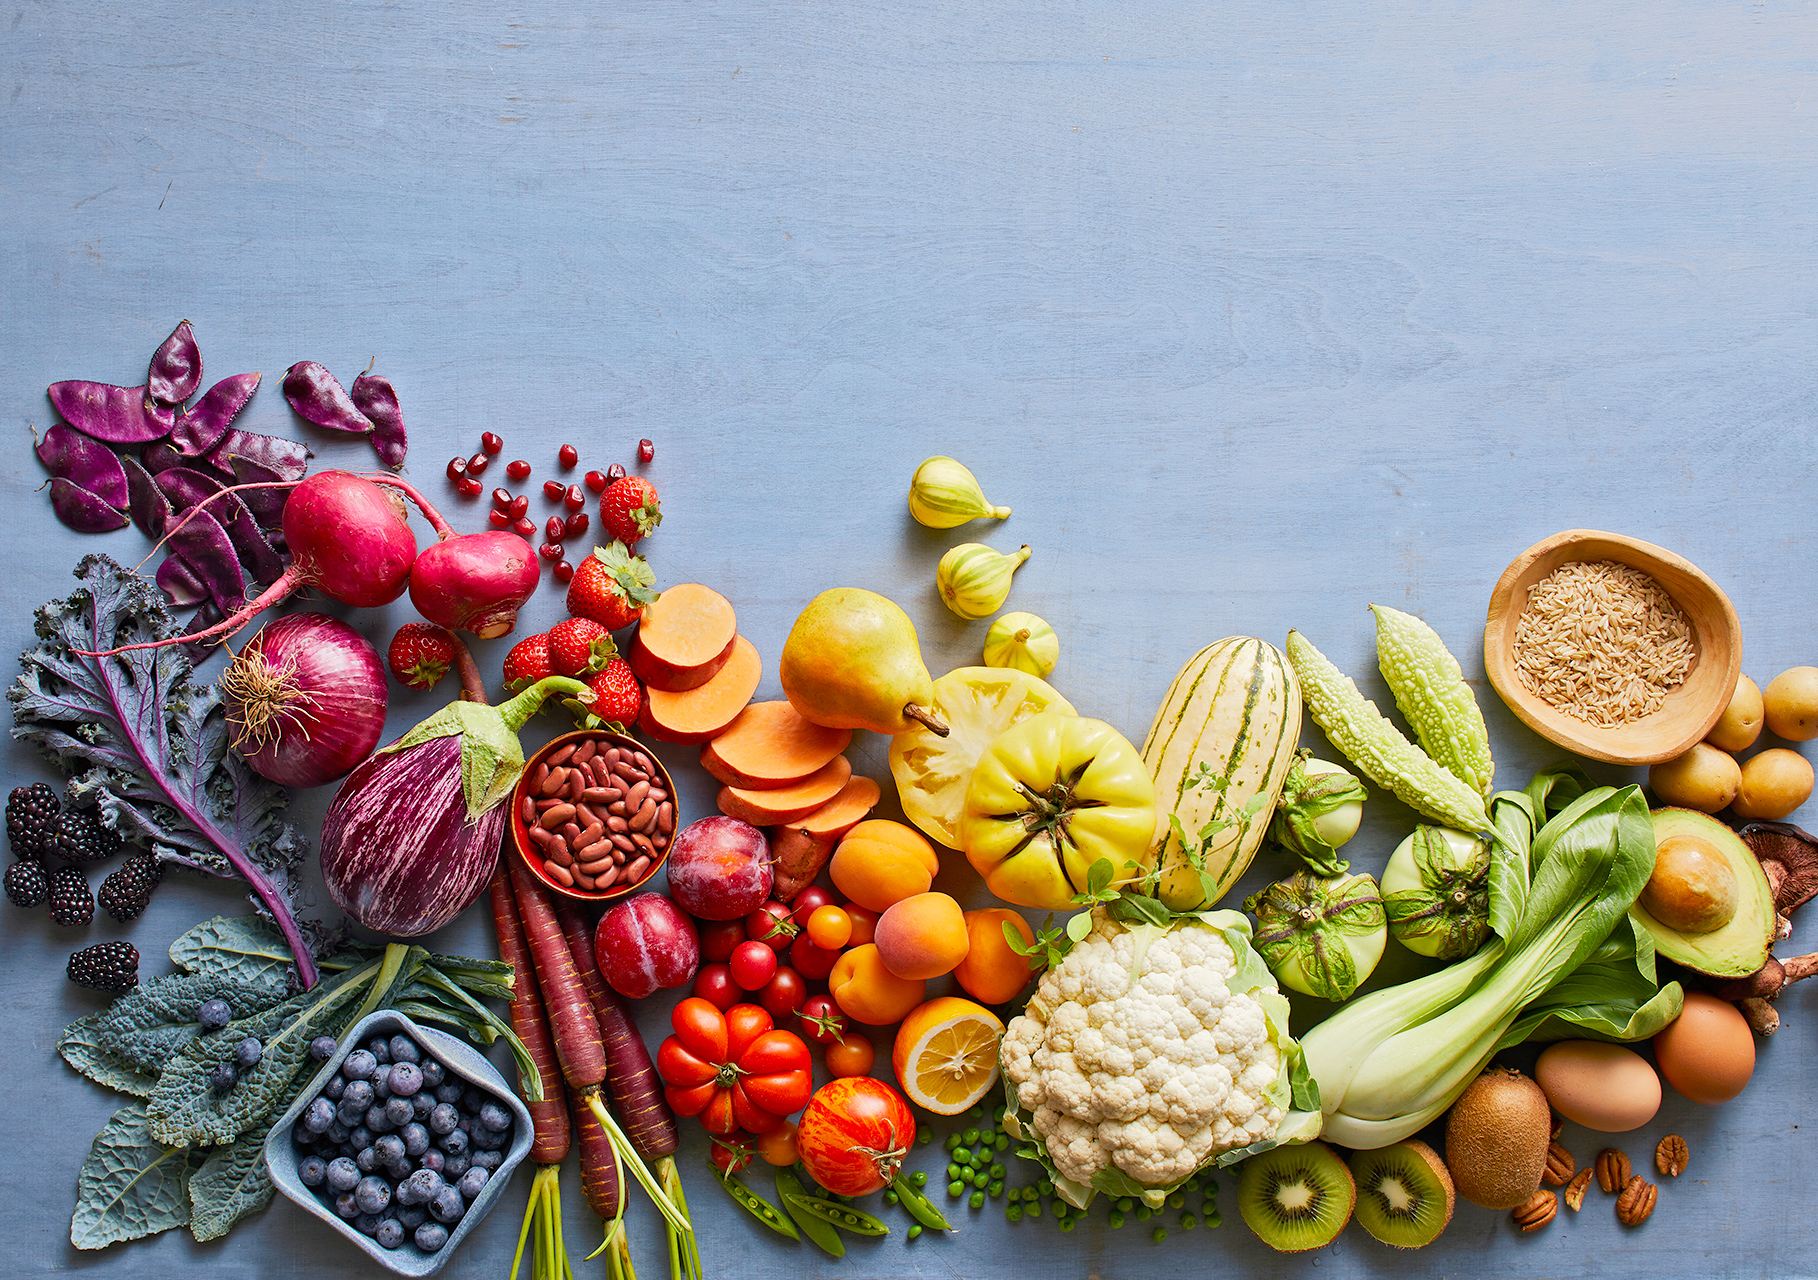 vegetables and fruits in spectrum of color